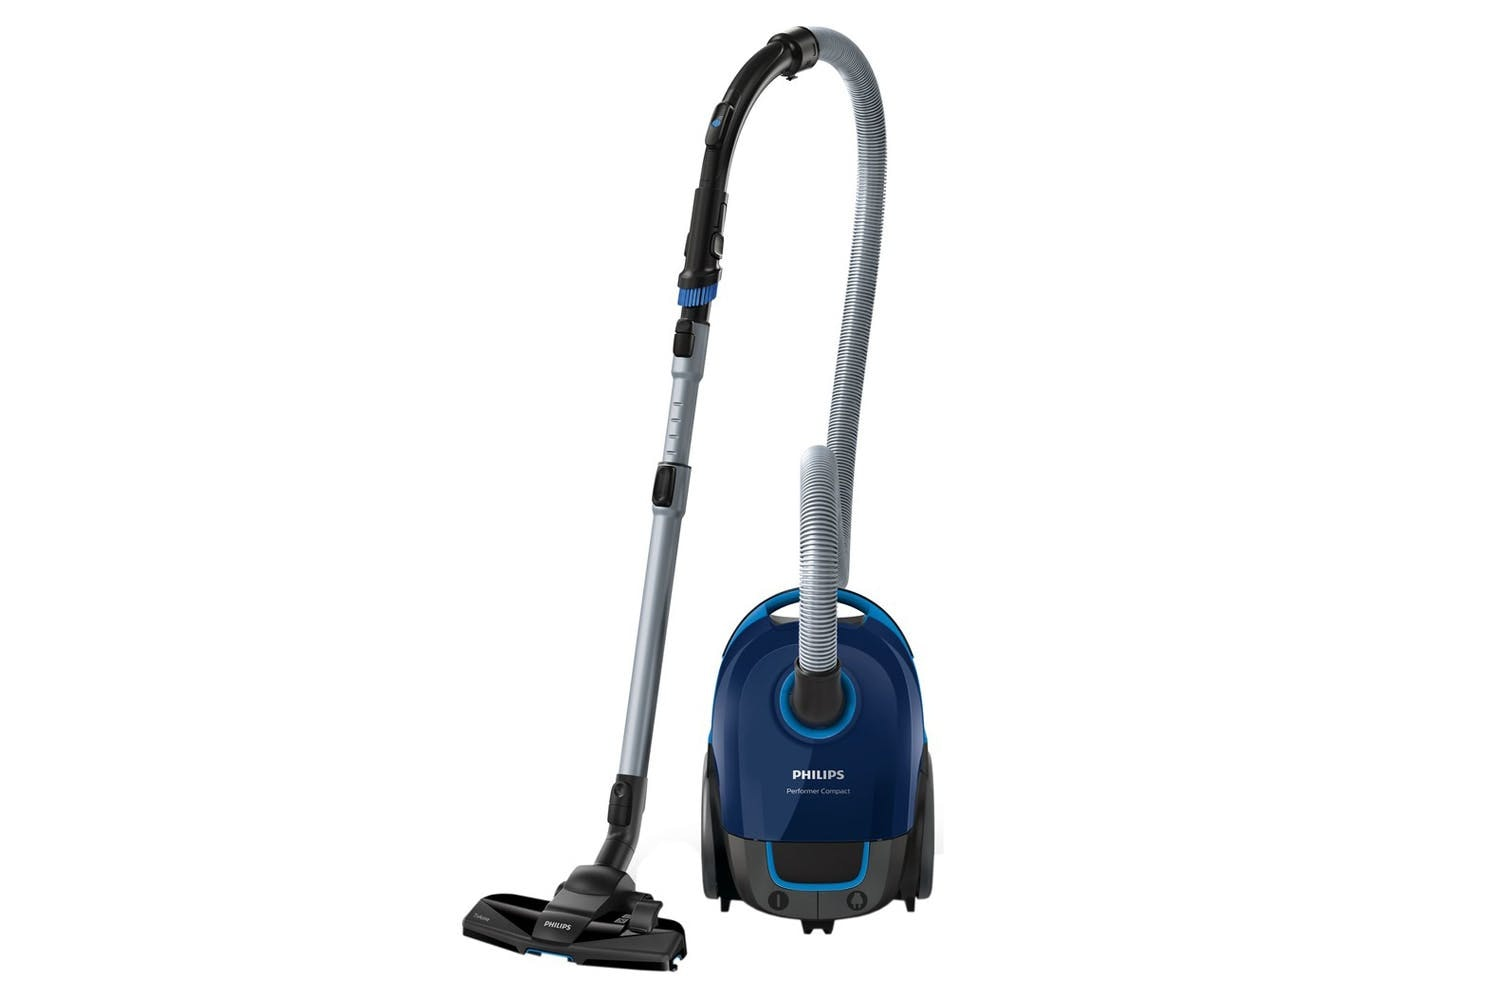 Philips Compact Vacuum Cleaner | FC8375/69